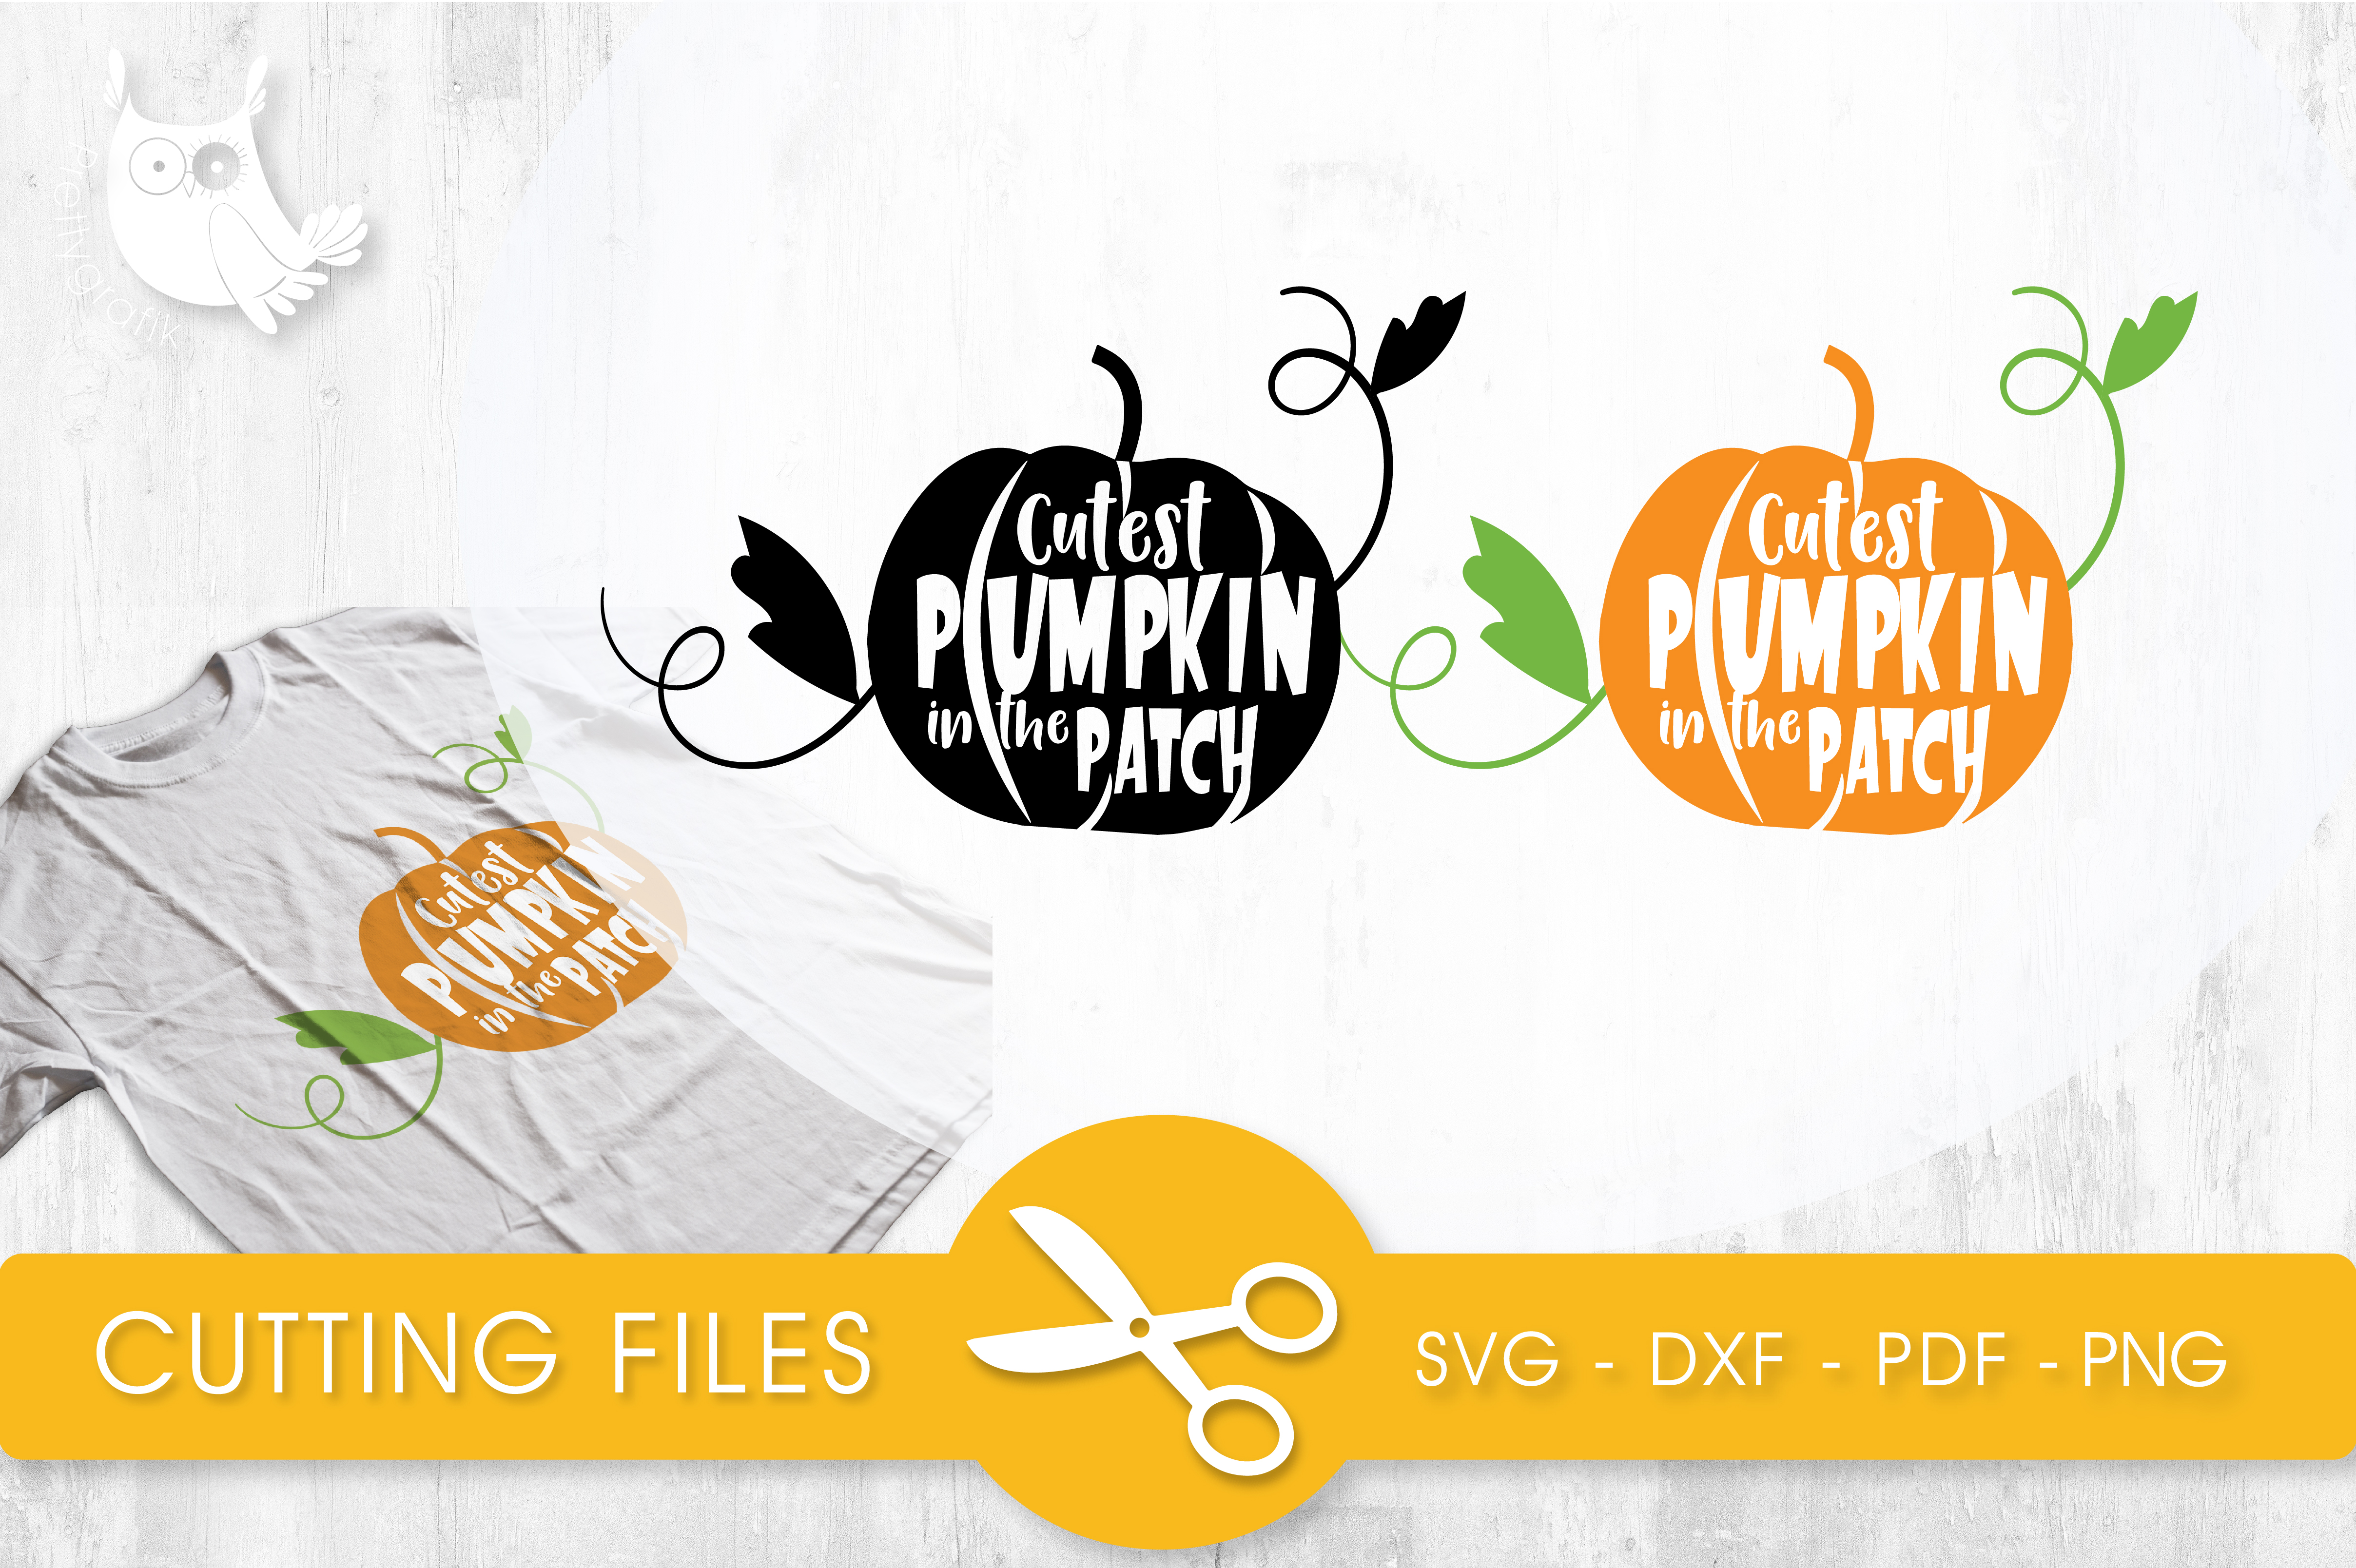 Download Free Cutest Pumpkin In The Patch Graphic By Prettycuttables for Cricut Explore, Silhouette and other cutting machines.